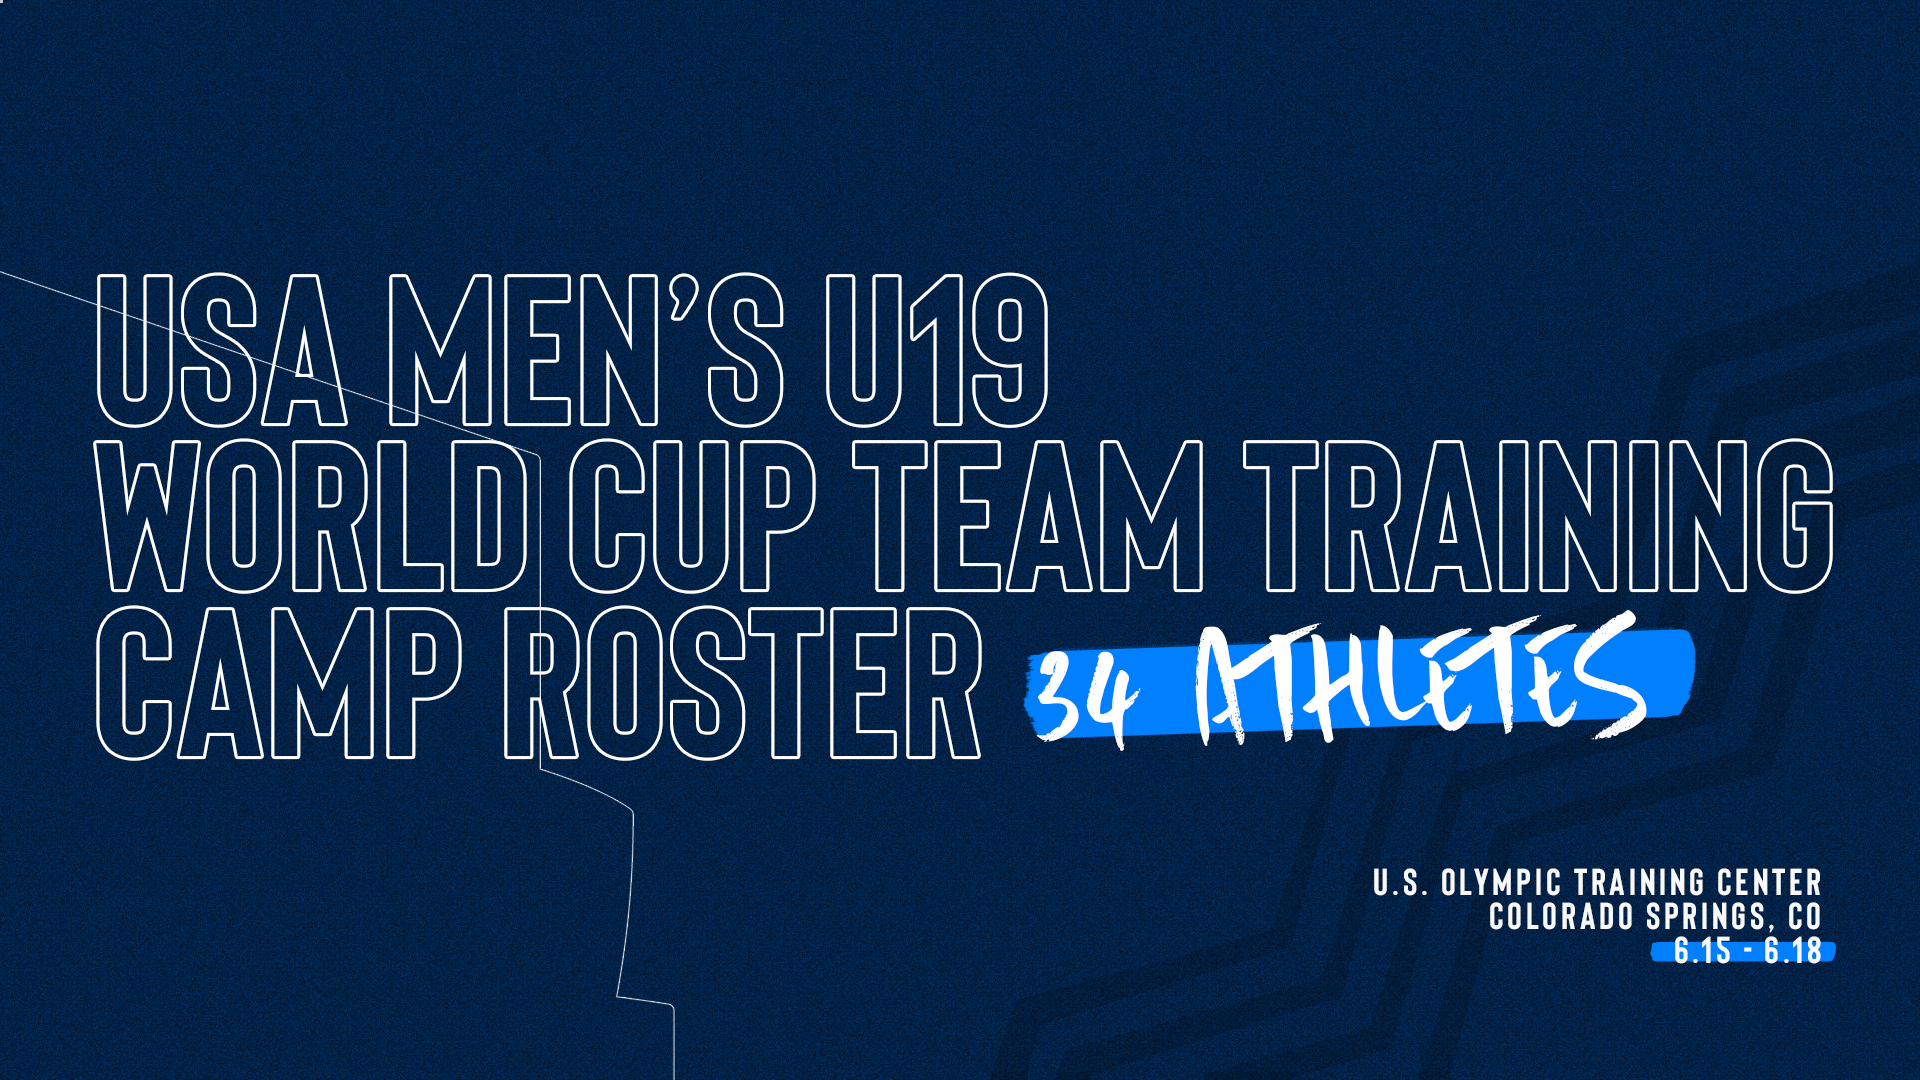 2019 USA Men's U19 Training Camp Roster 34